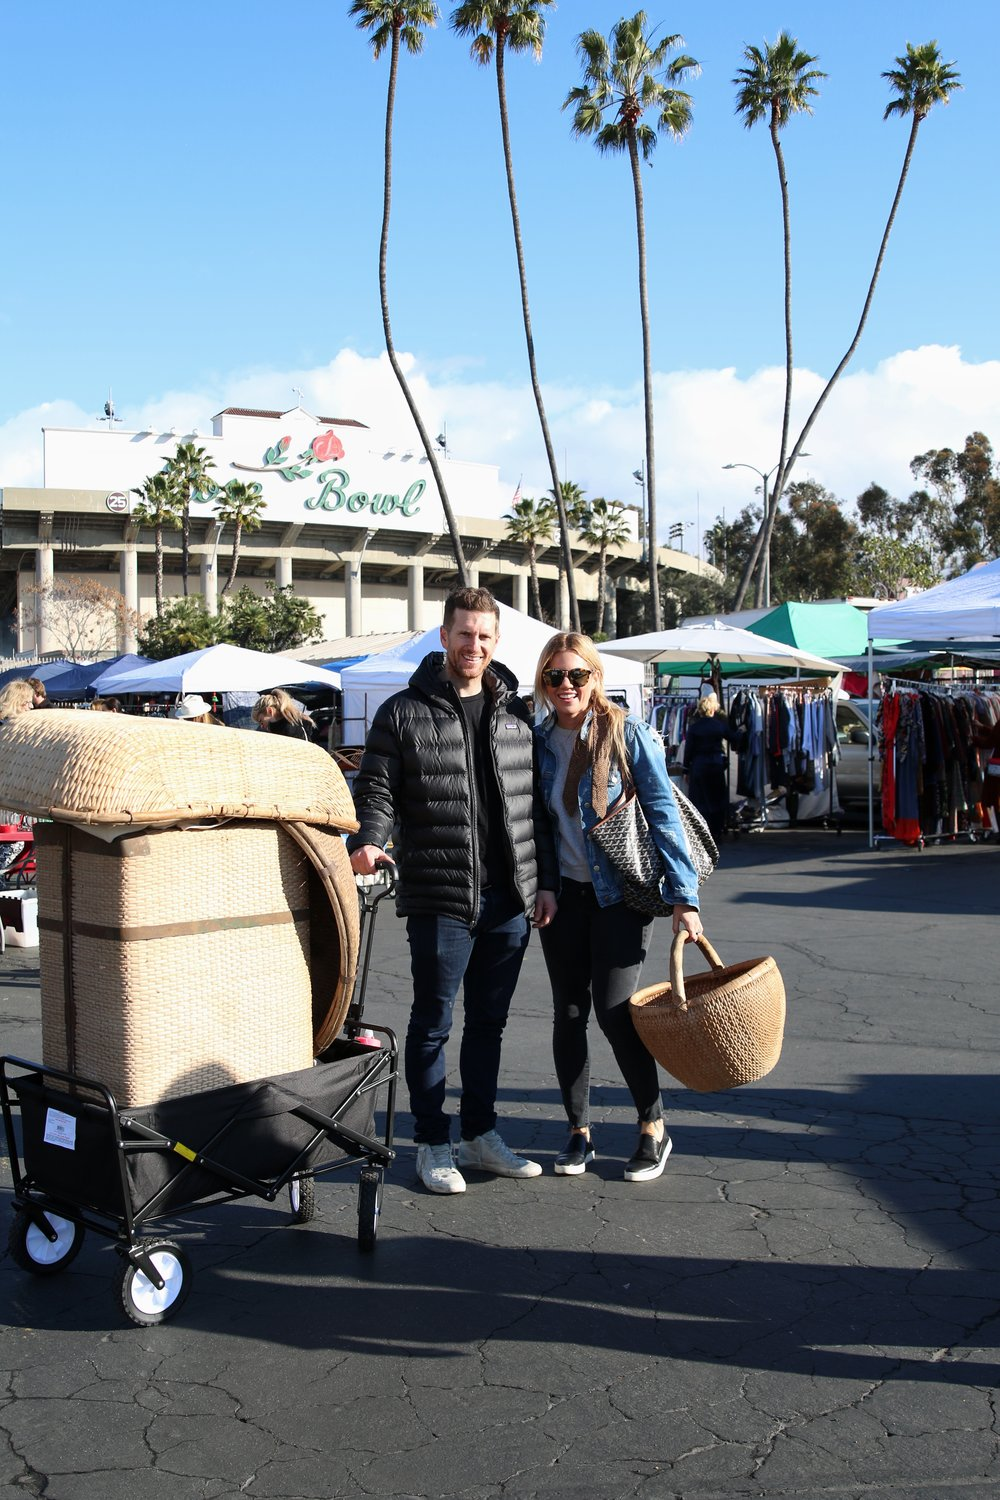 Studio McGee at the Rose Bowl Flea Market